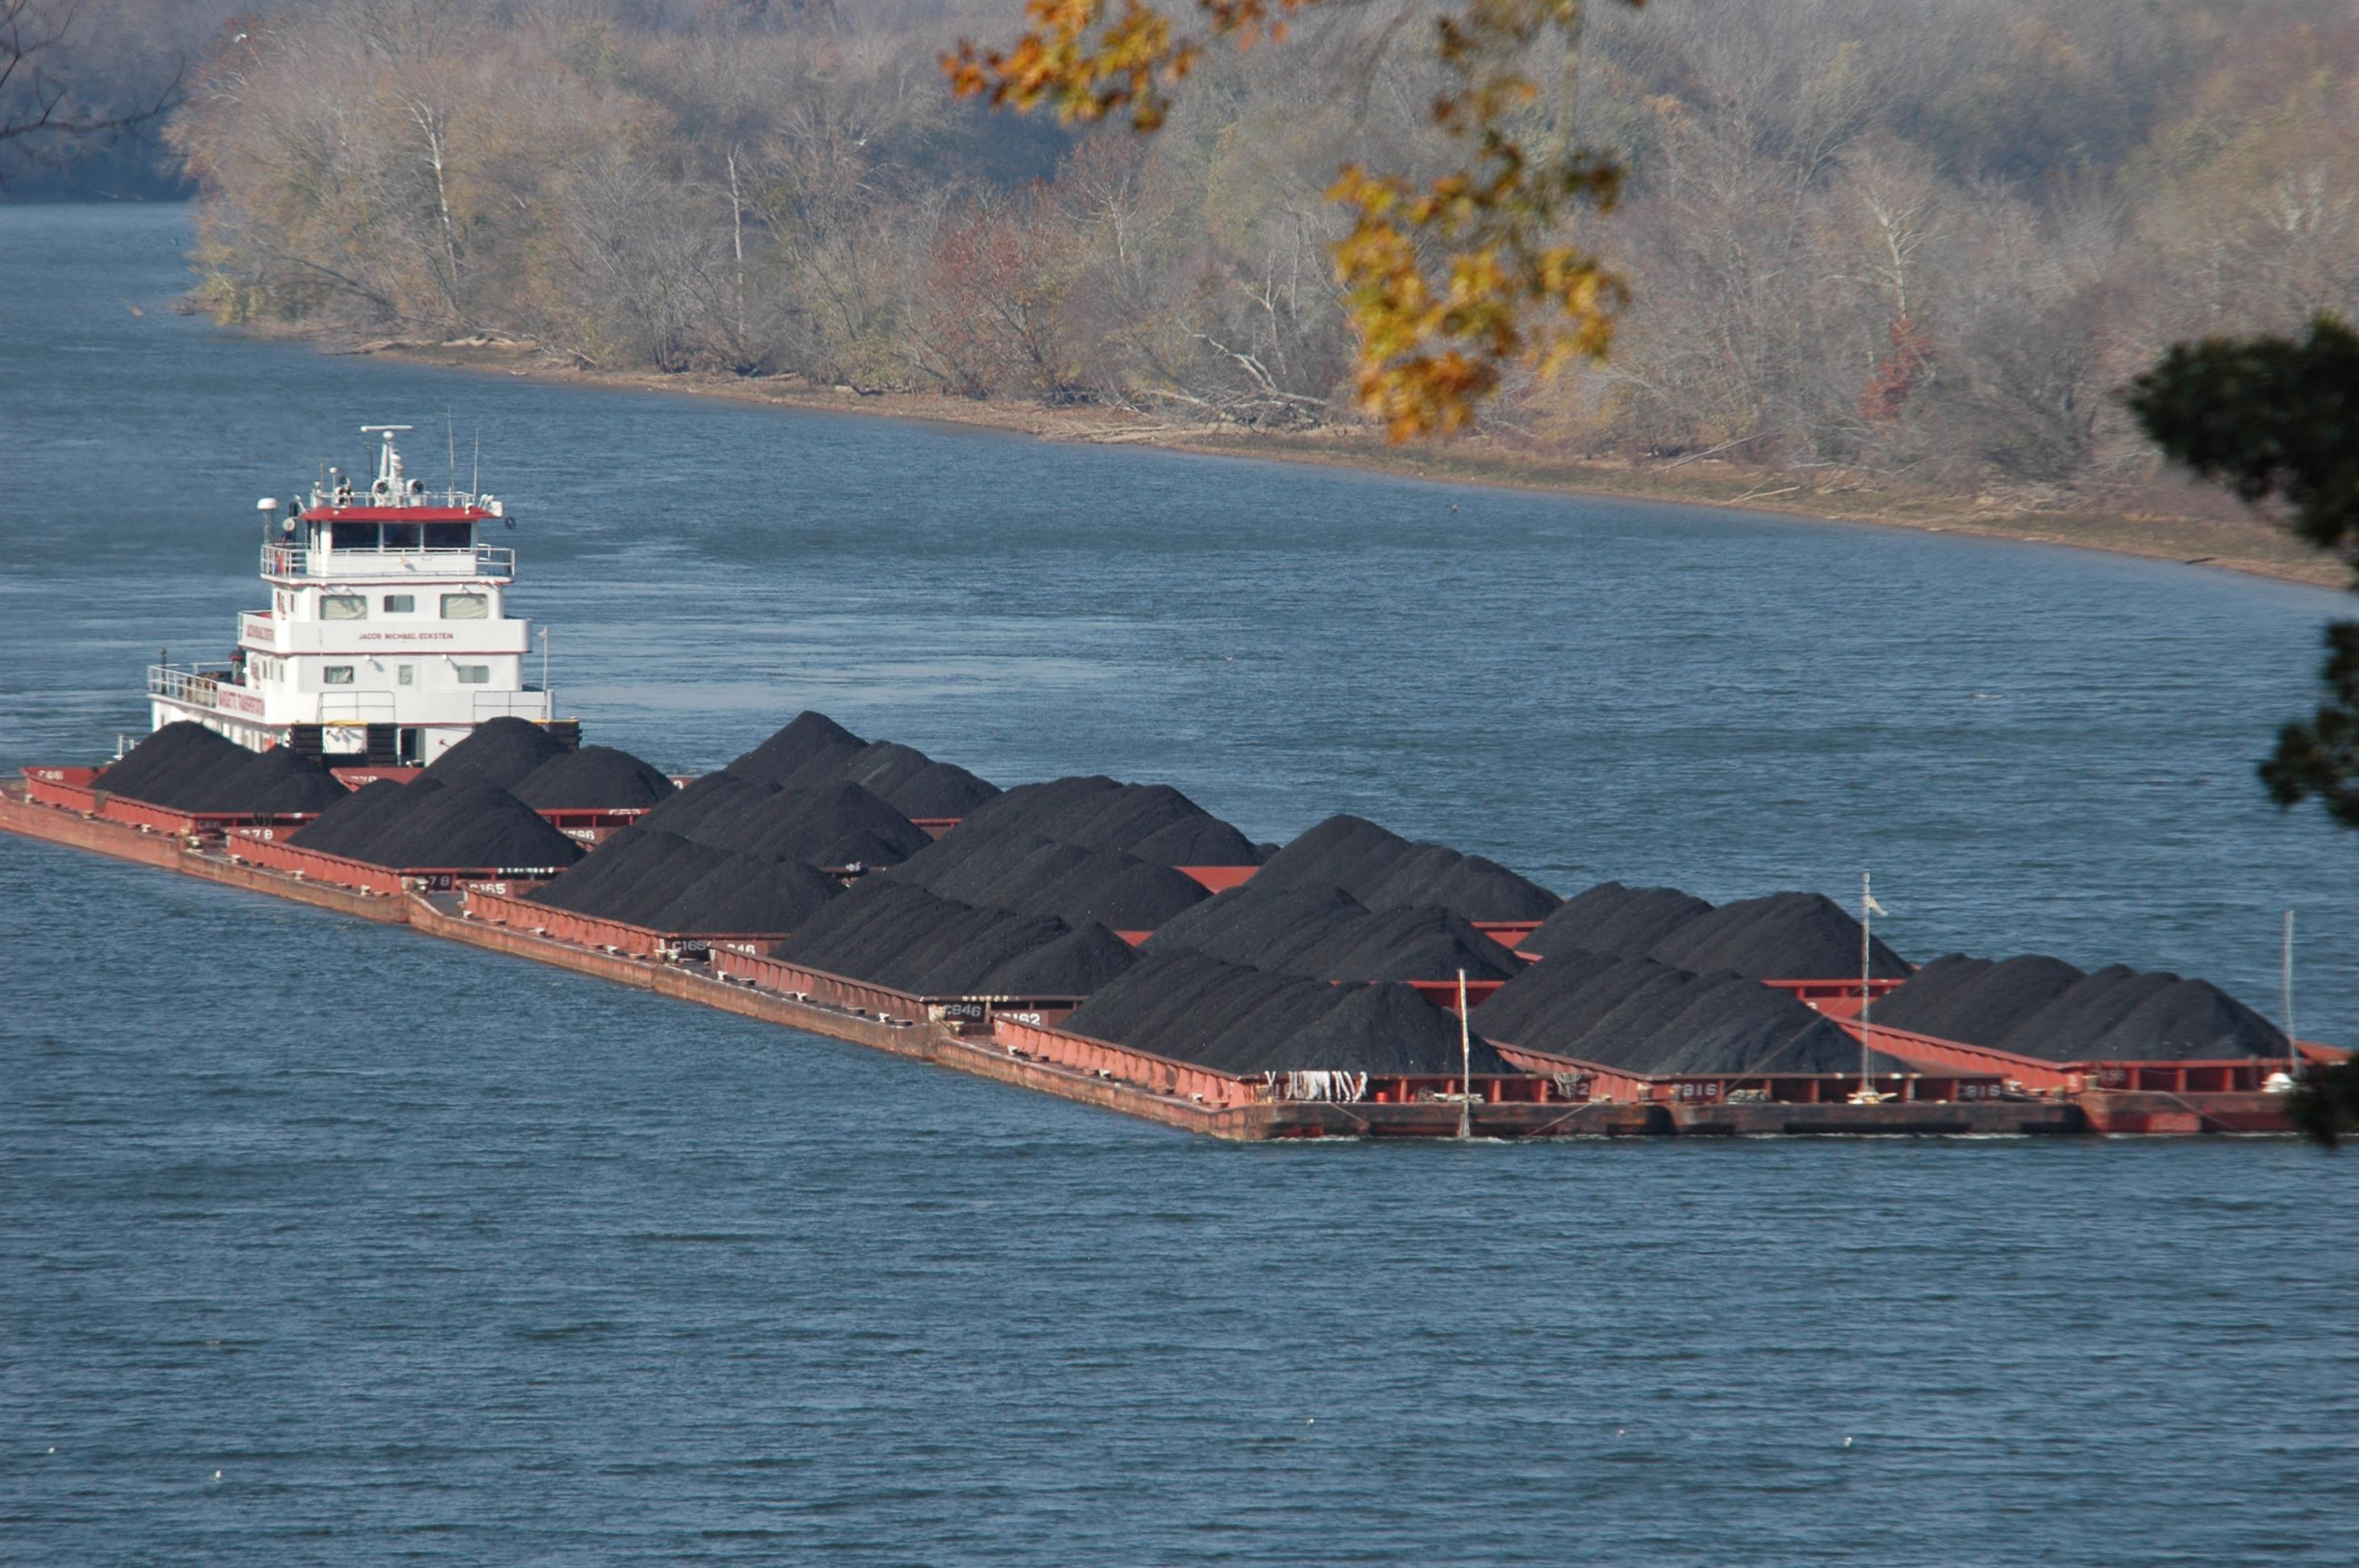 A Marquette River boat towing a barge full of coal